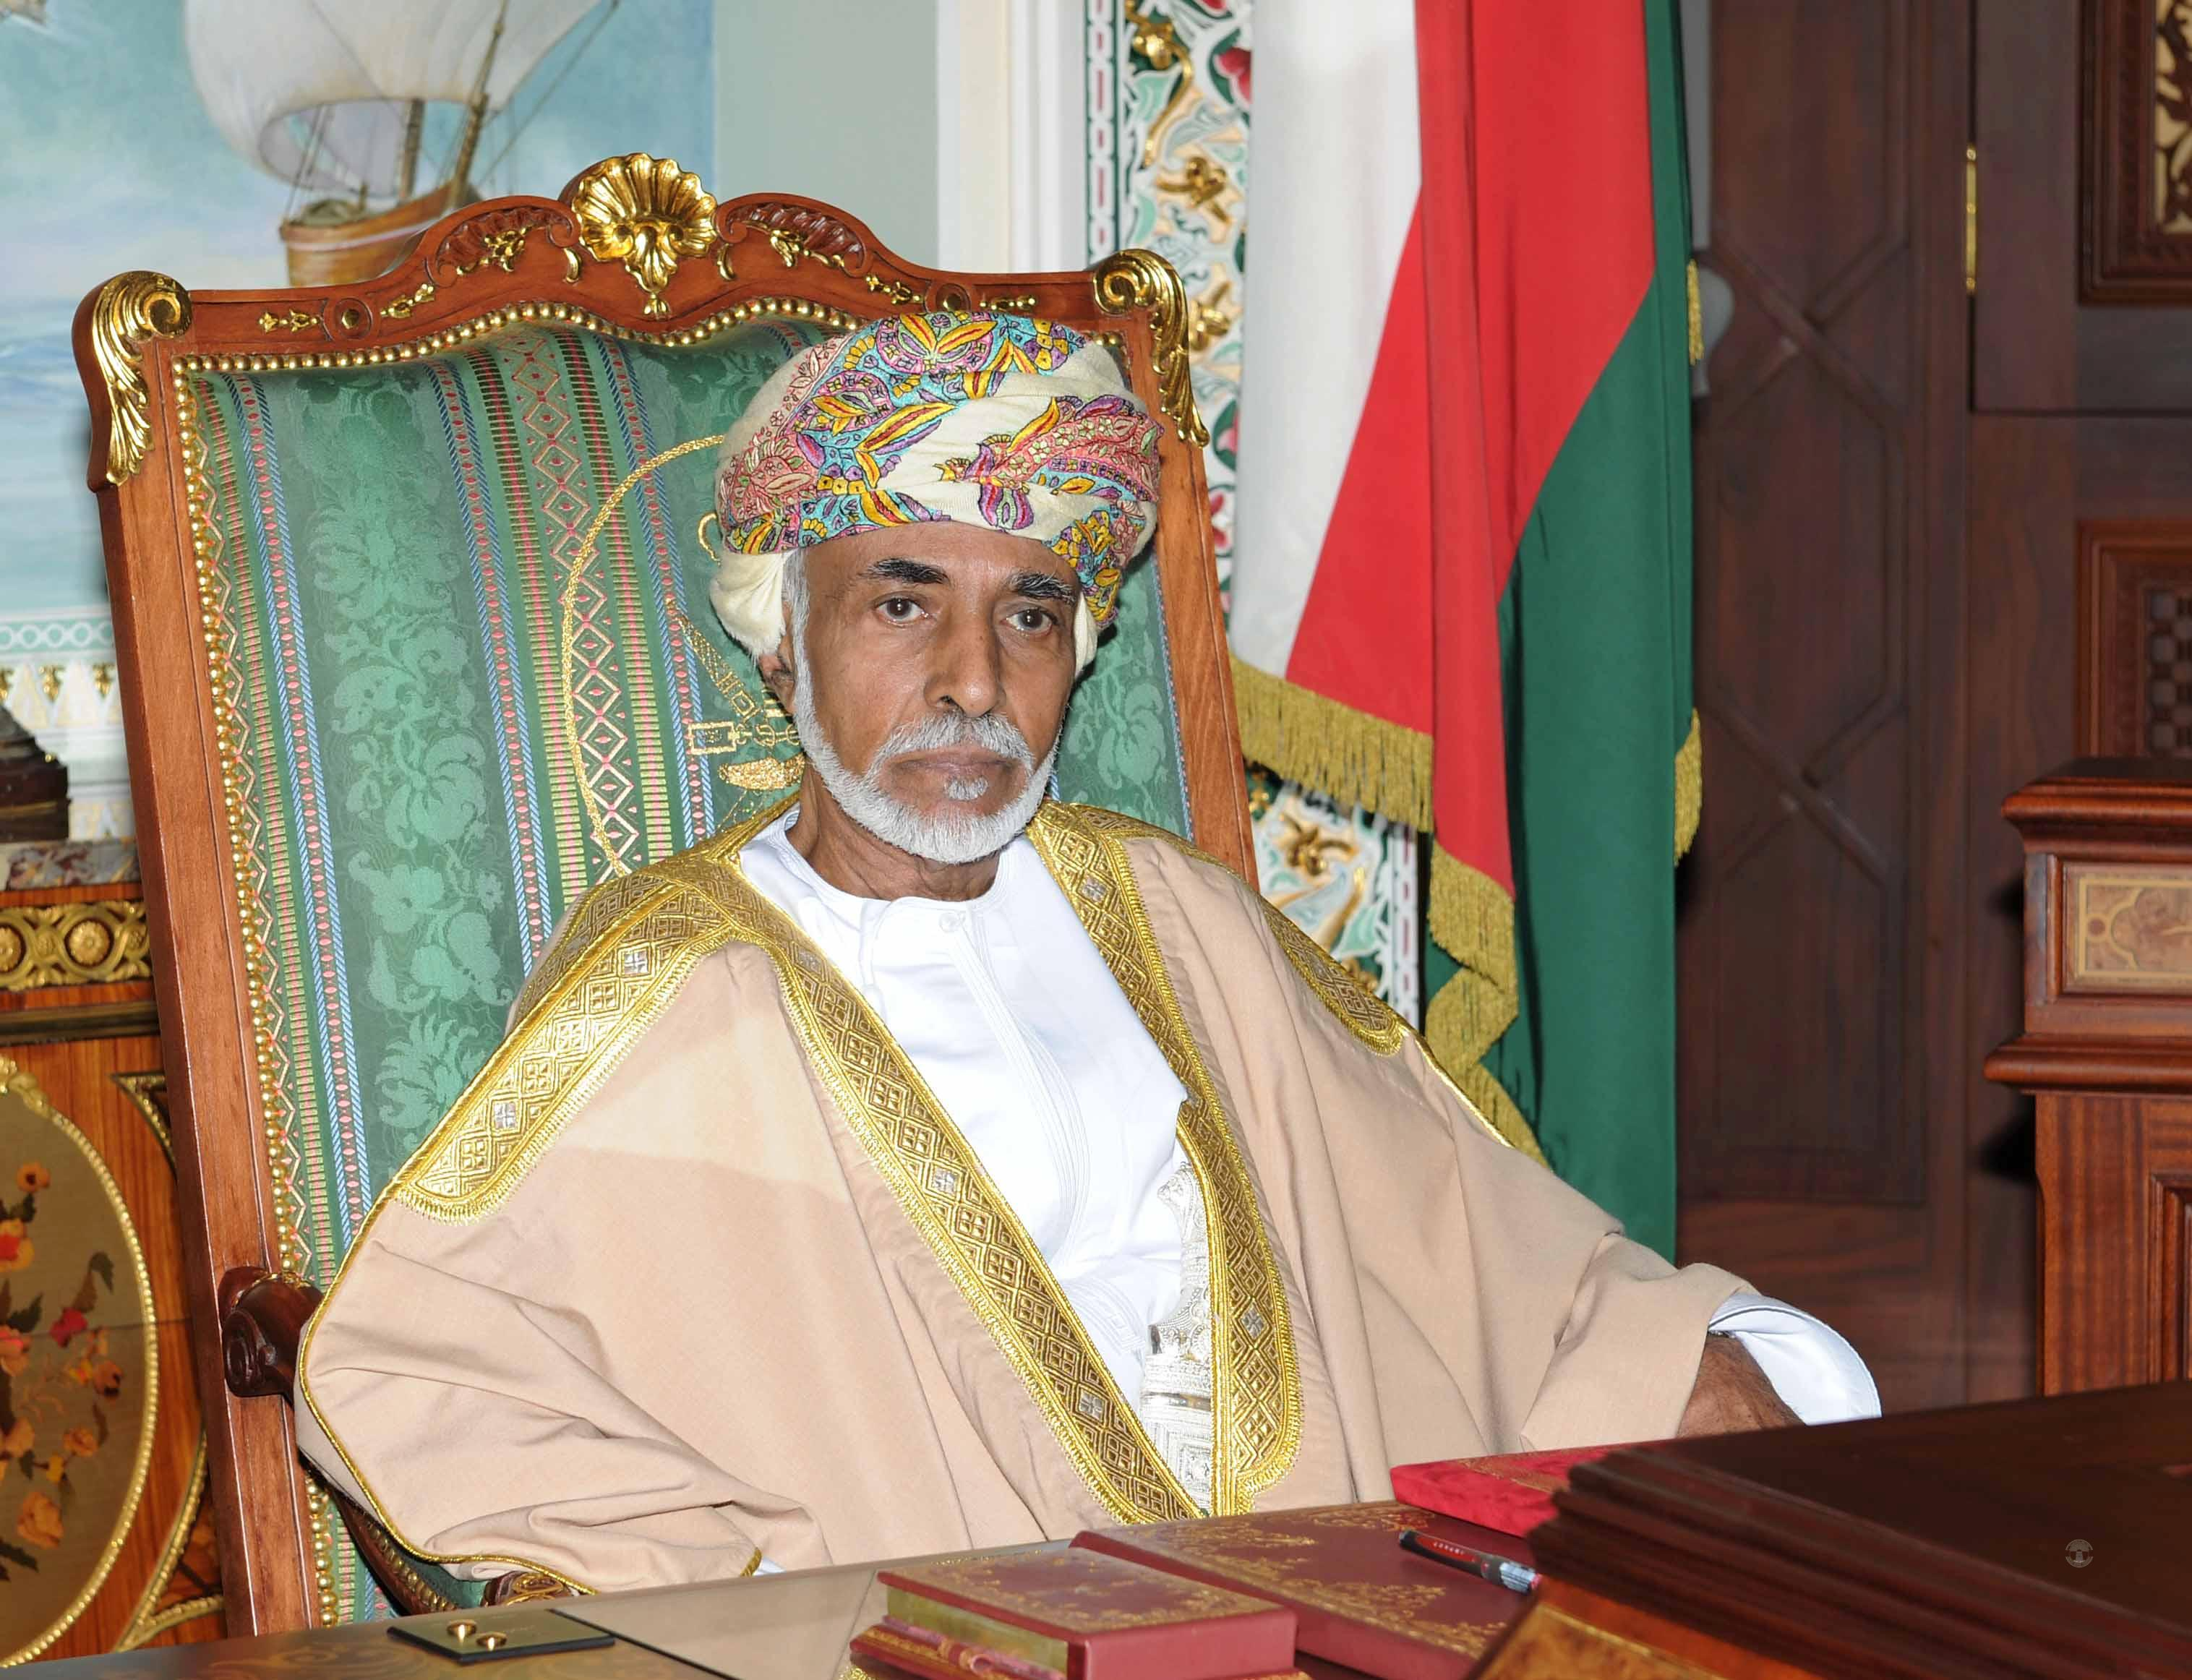 His Majesty Sultan Qaboos receives more greetings for 46th National Day